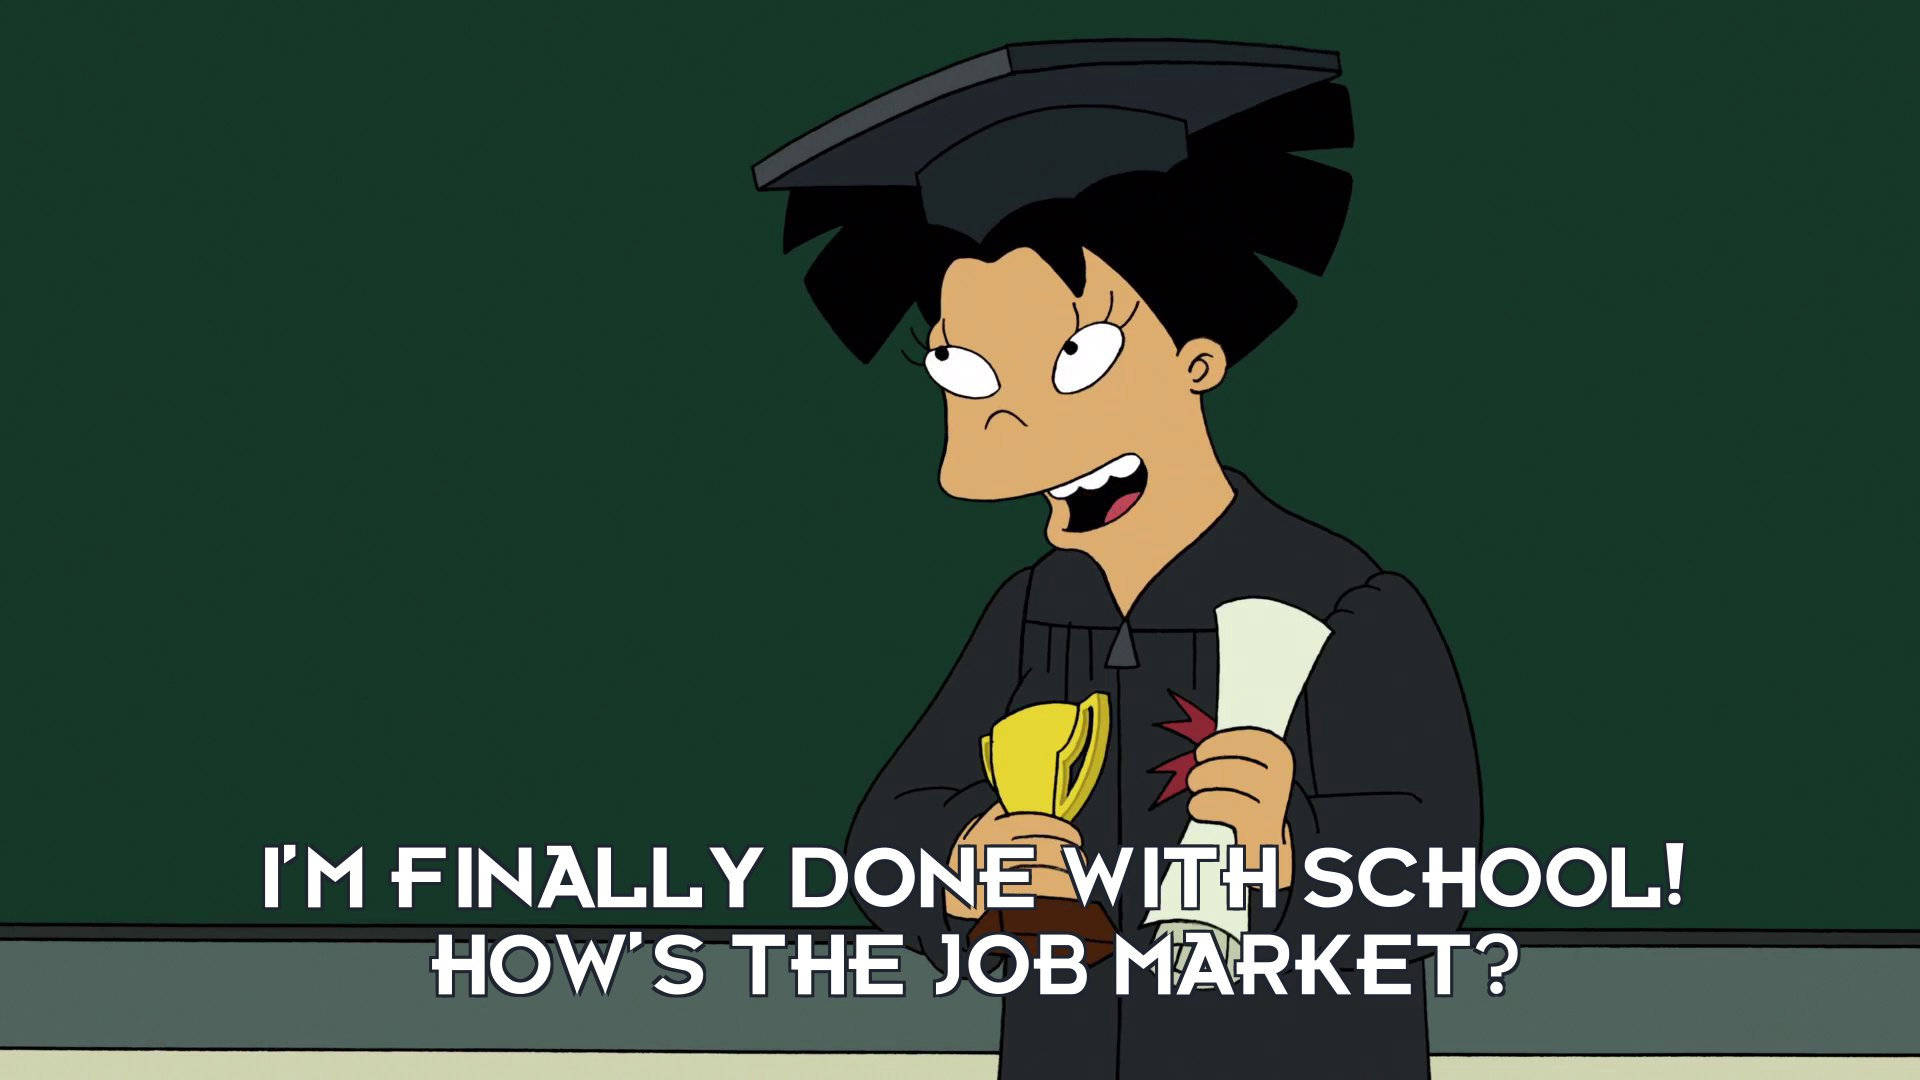 Amy Wong: I'm finally done with school! How's the job market?